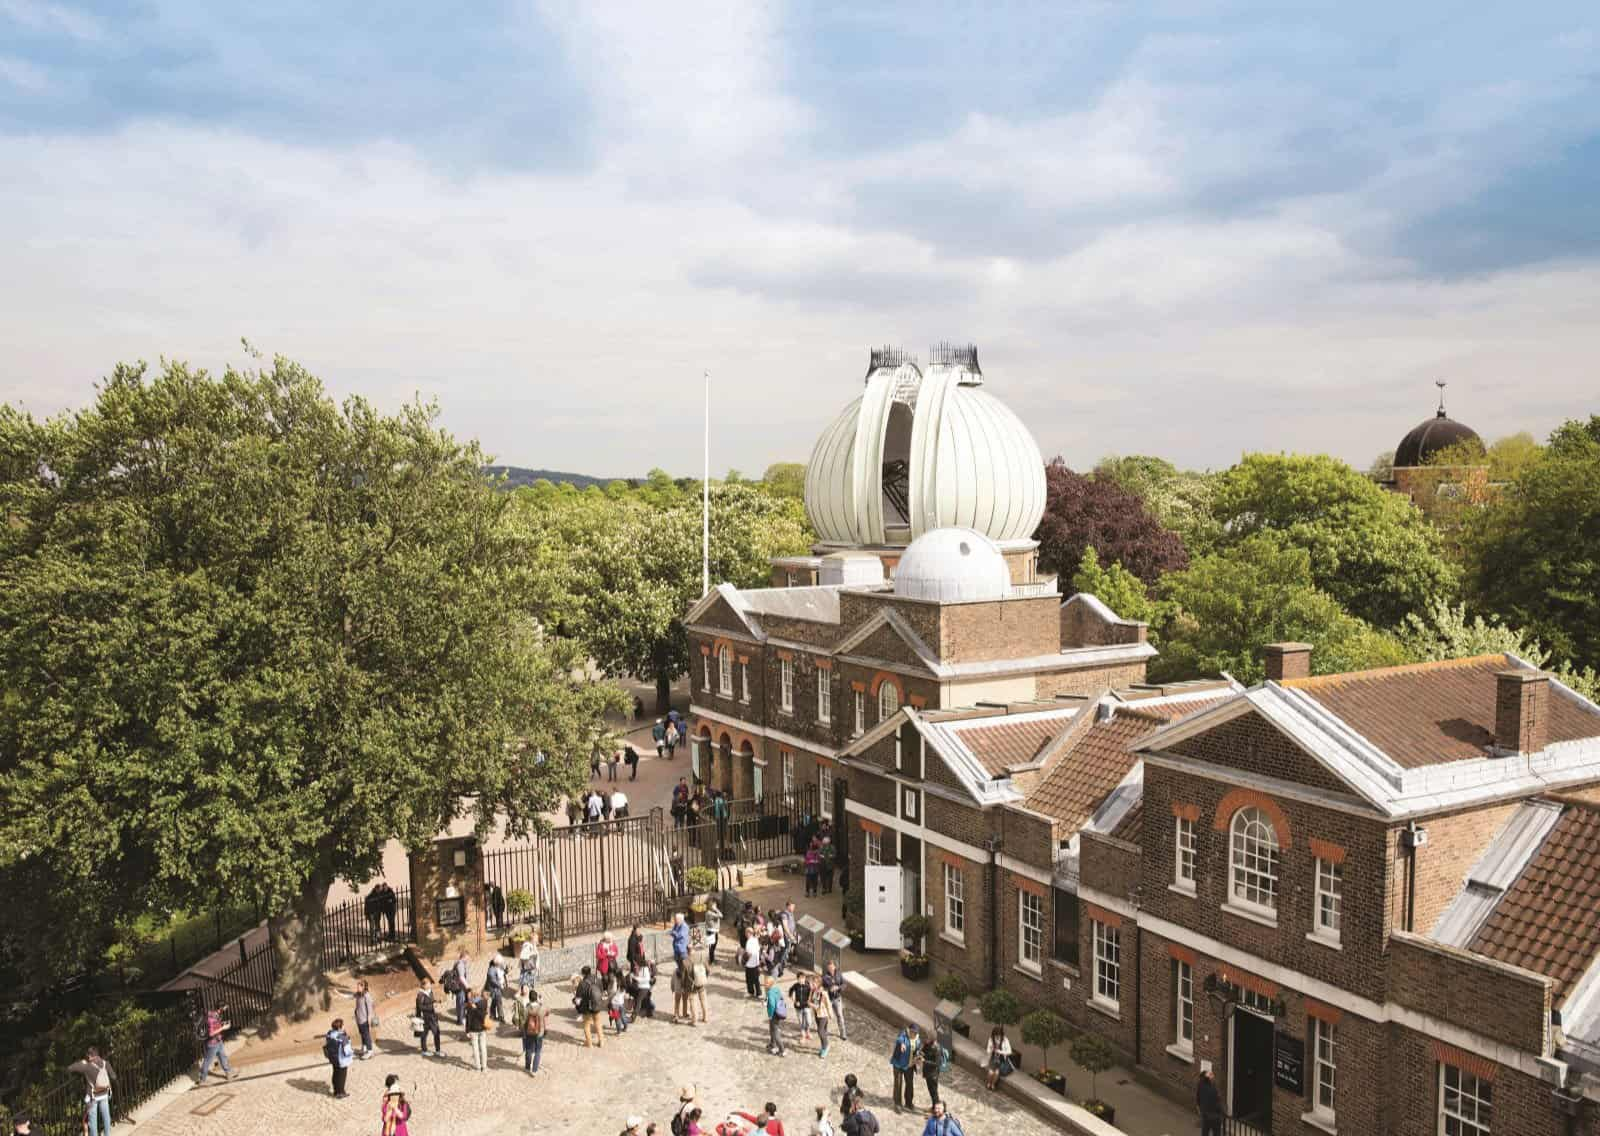 Exterior of Royal Museums Greenwich's Royal Observatory